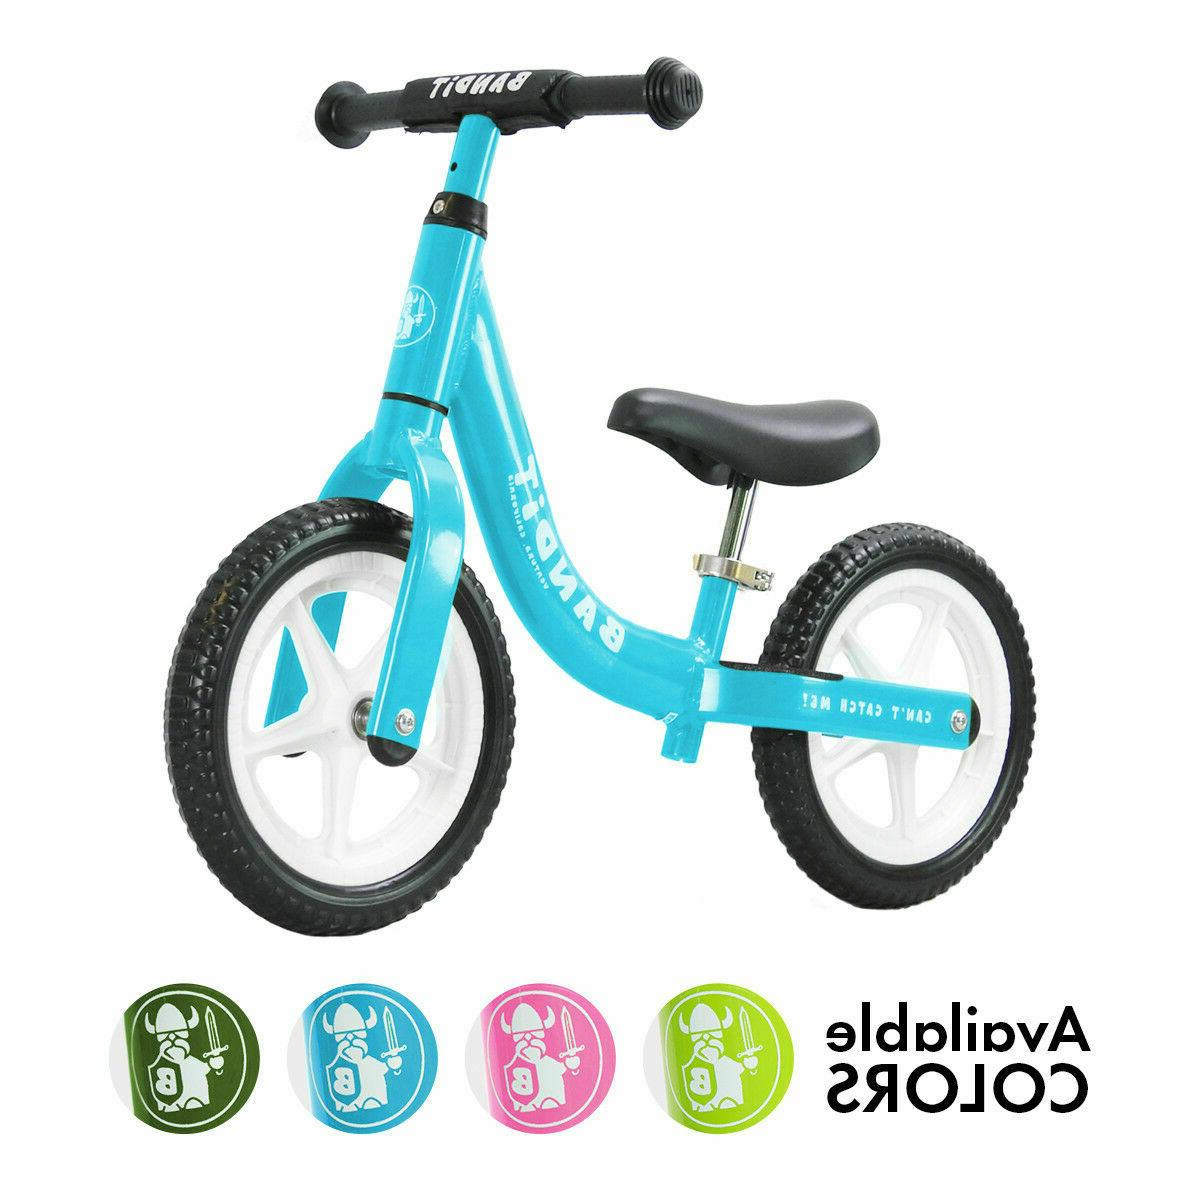 Bandit Bicycles Bike Super for 1-6 Year